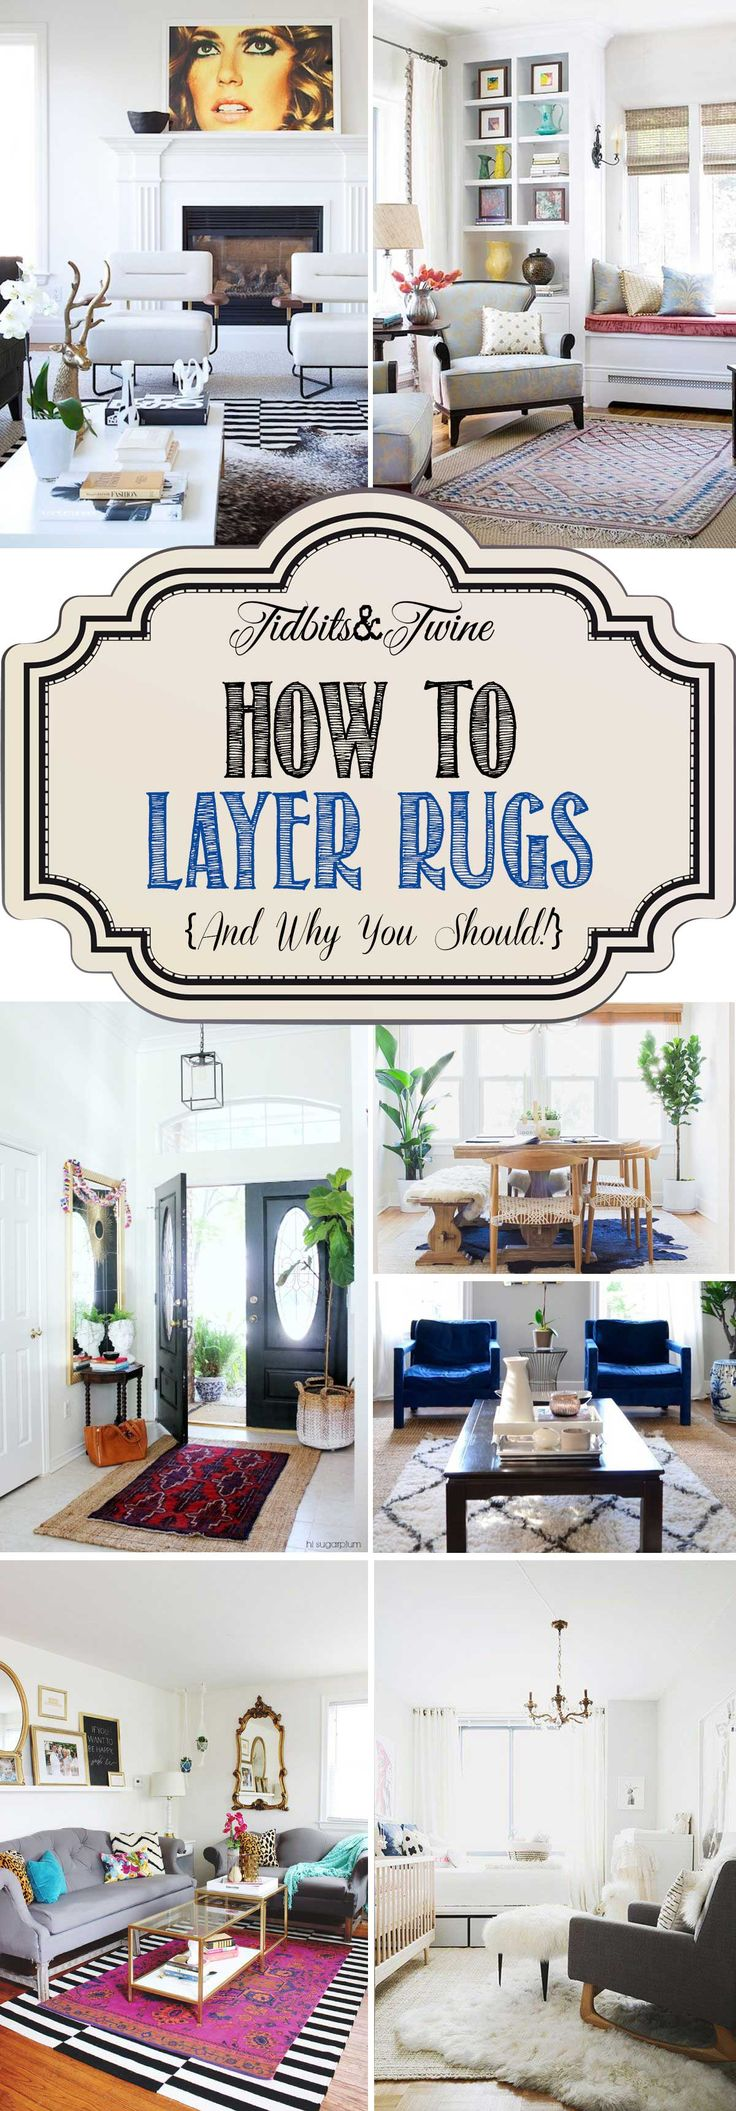 TIDBITS&TWINE---How-to-Layer-Rugs